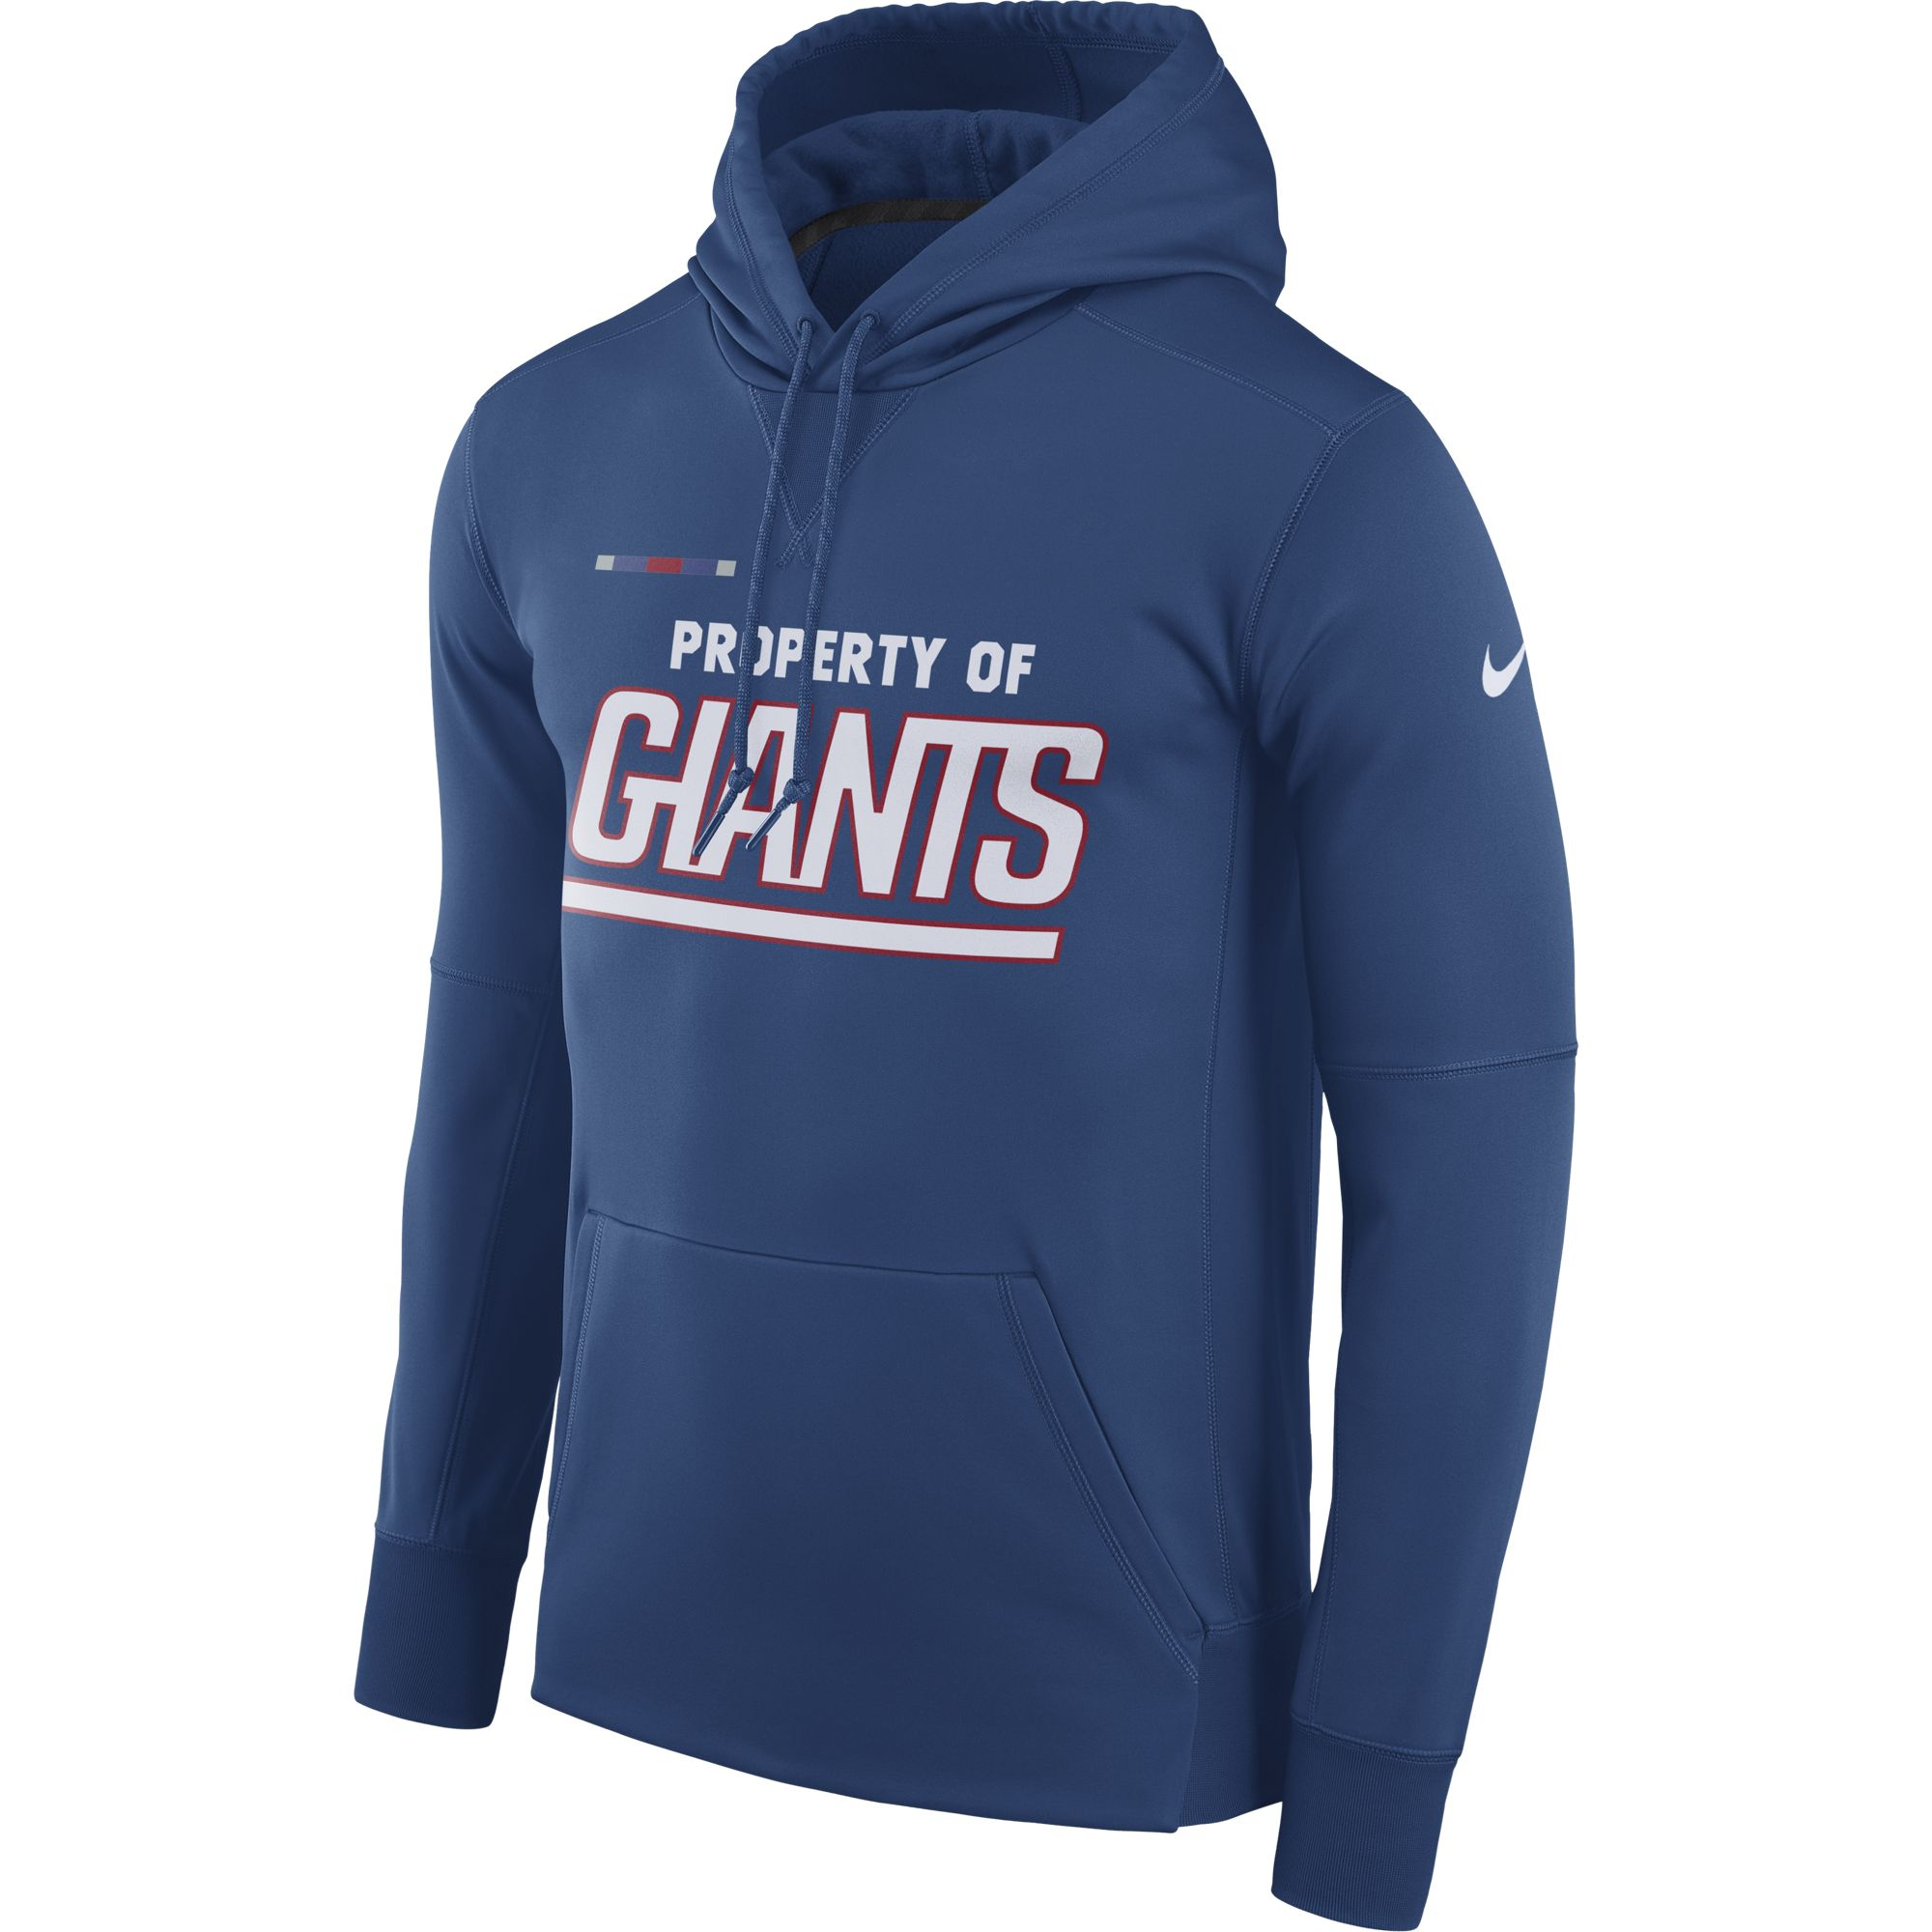 0b8ece0462e9 Men s Nike New York Giants Therma Fit SL Pullover Hoodie - Sieverts  Sporting Goods